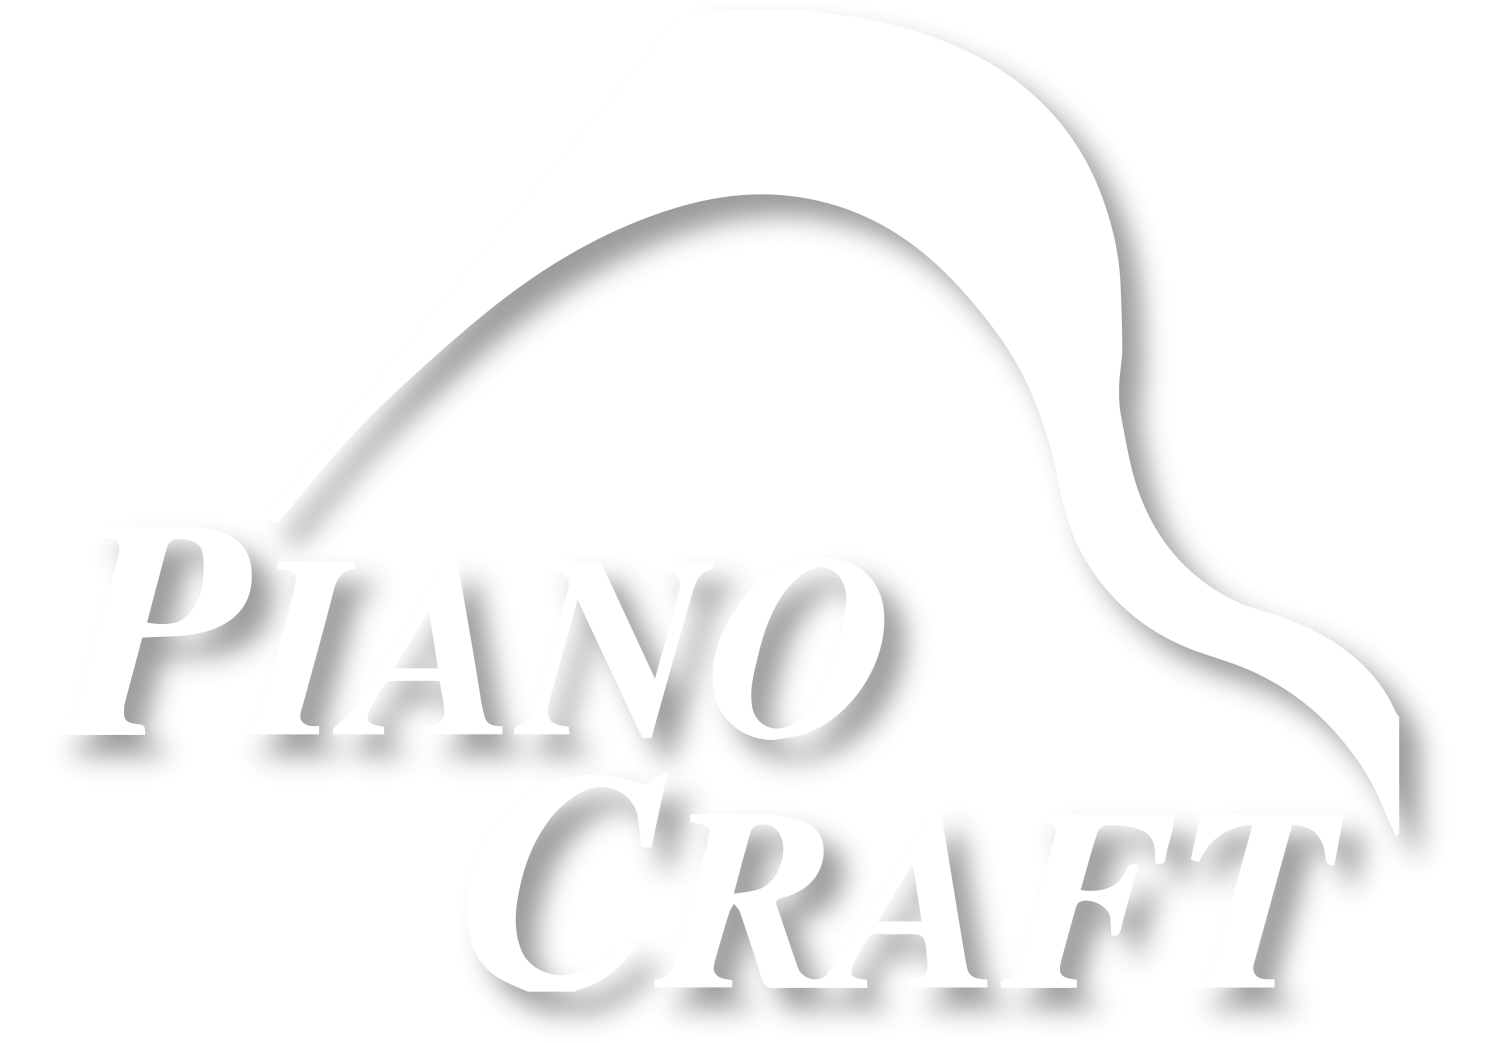 Piano Craft